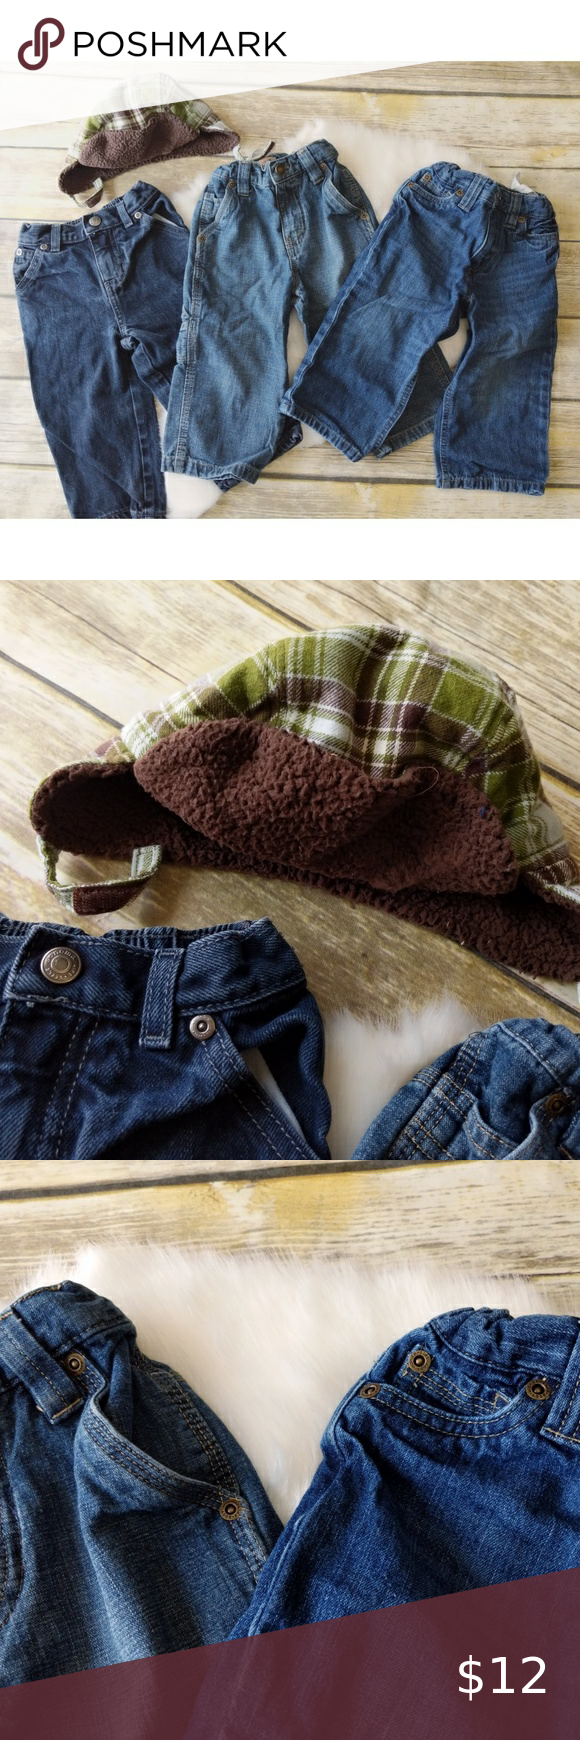 Baby Boy Jeans lot with hat size 18m. #0943 Baby Boy Jeans lot with hat size 18m Wonder Kids Carpenter and relaxed fit Soma carpenter jeans Gymboree hat, size 12-18m Lighty worn Wonderkids Bottoms Jeans